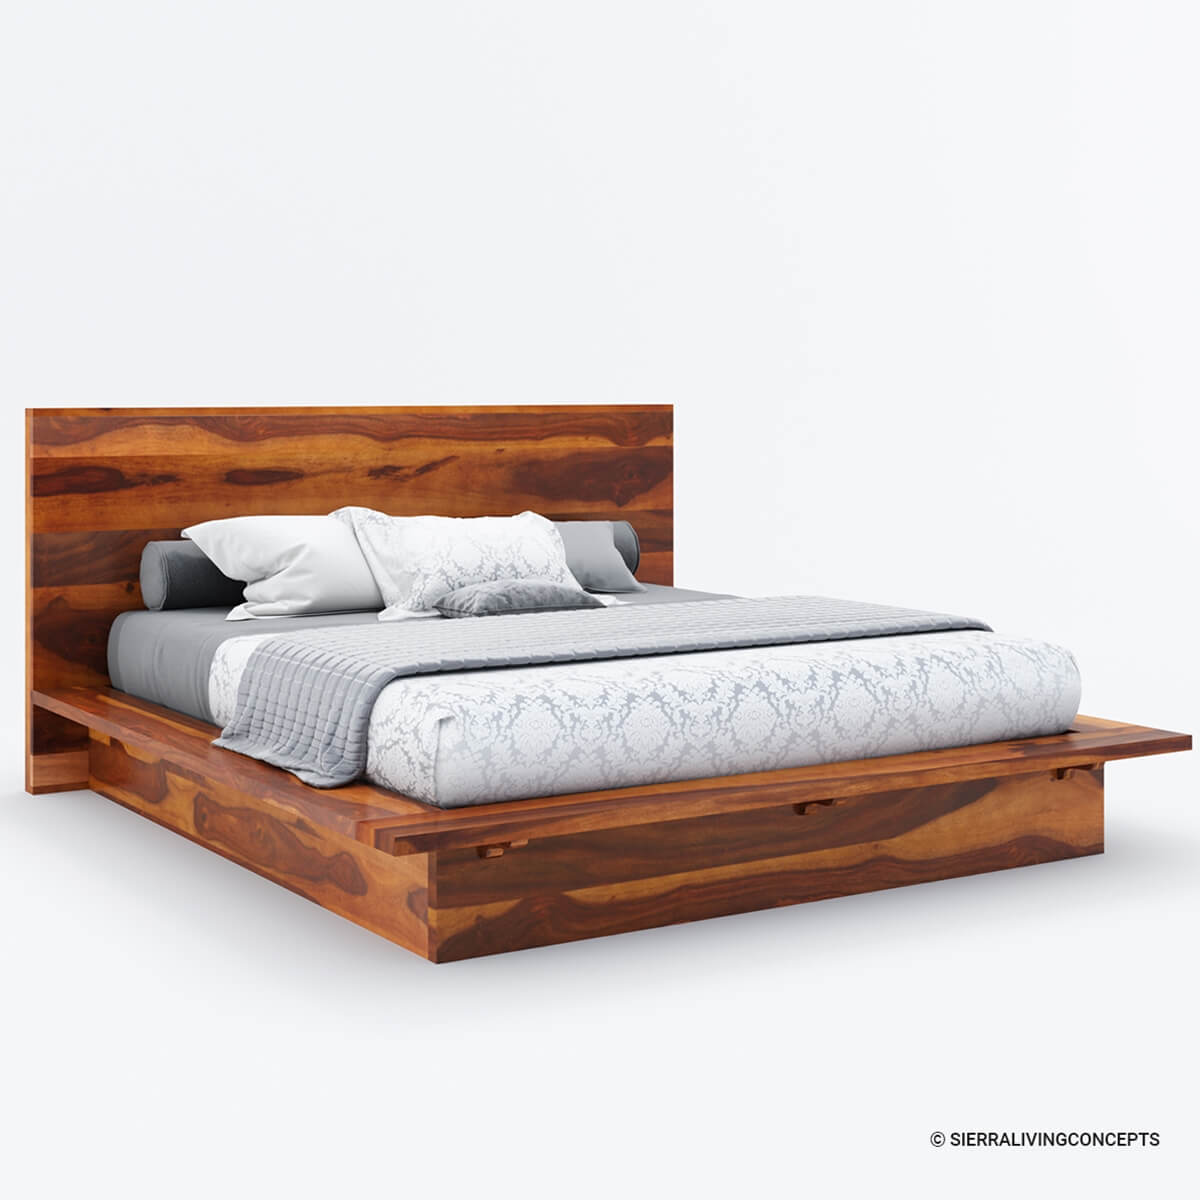 King Size Bed Frame Delaware King Size Solid Wood Platform Bed Frame